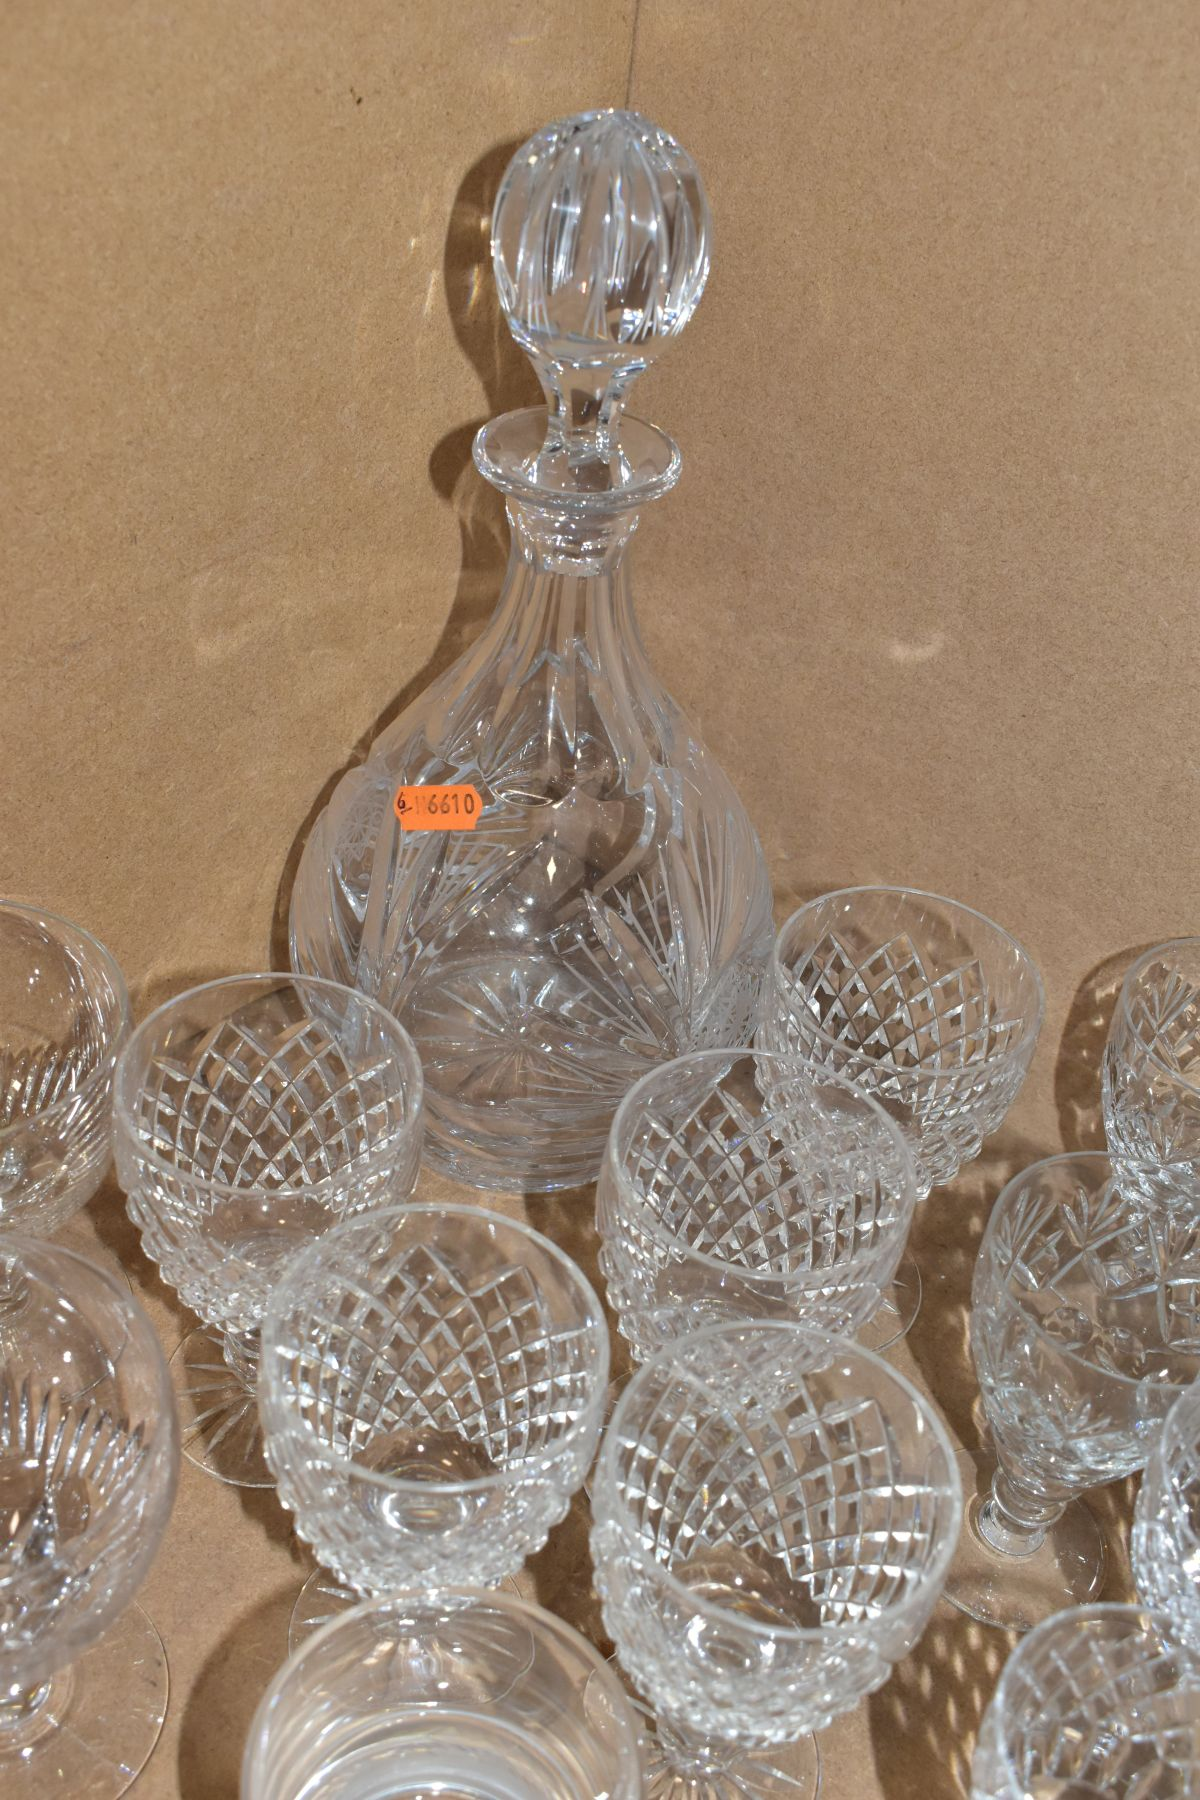 A GROUP OF GLASSWARE, including a boxed set of six Crystallera F.lli Fumo wine glasses, one set - Image 5 of 11